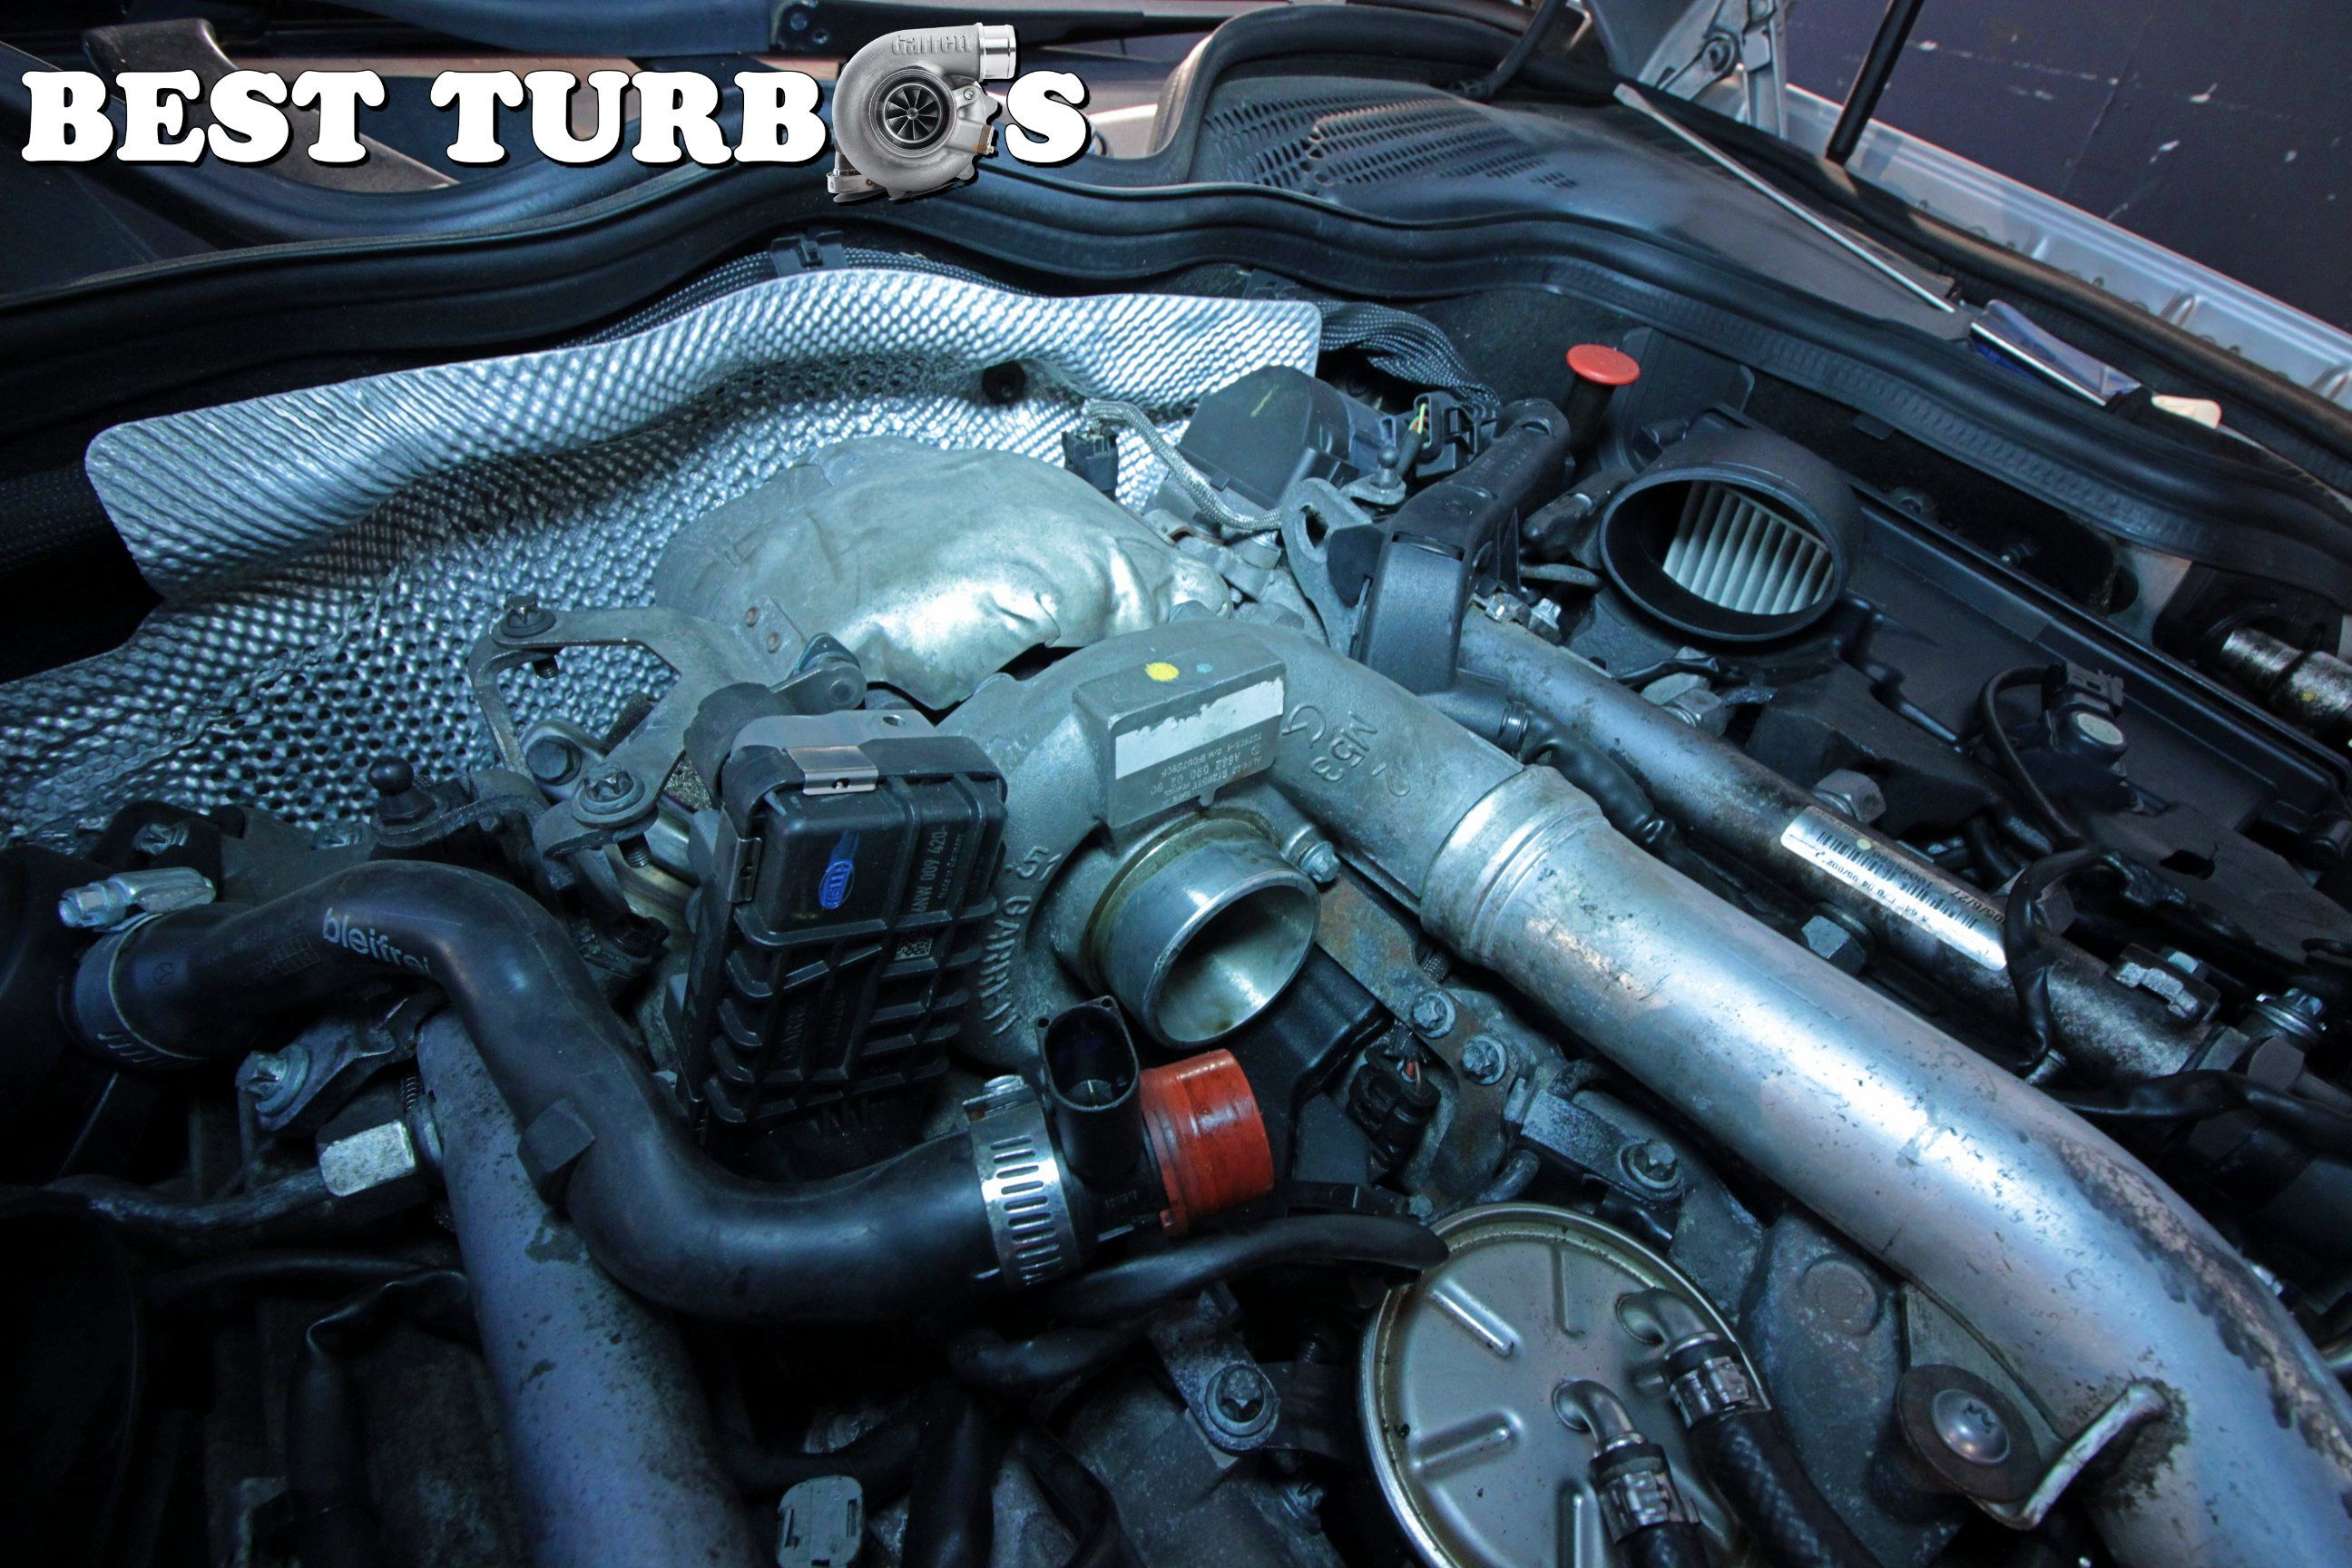 Mercedes ML320 ML280 CDI Turbo Turbocharger Problem Replacement